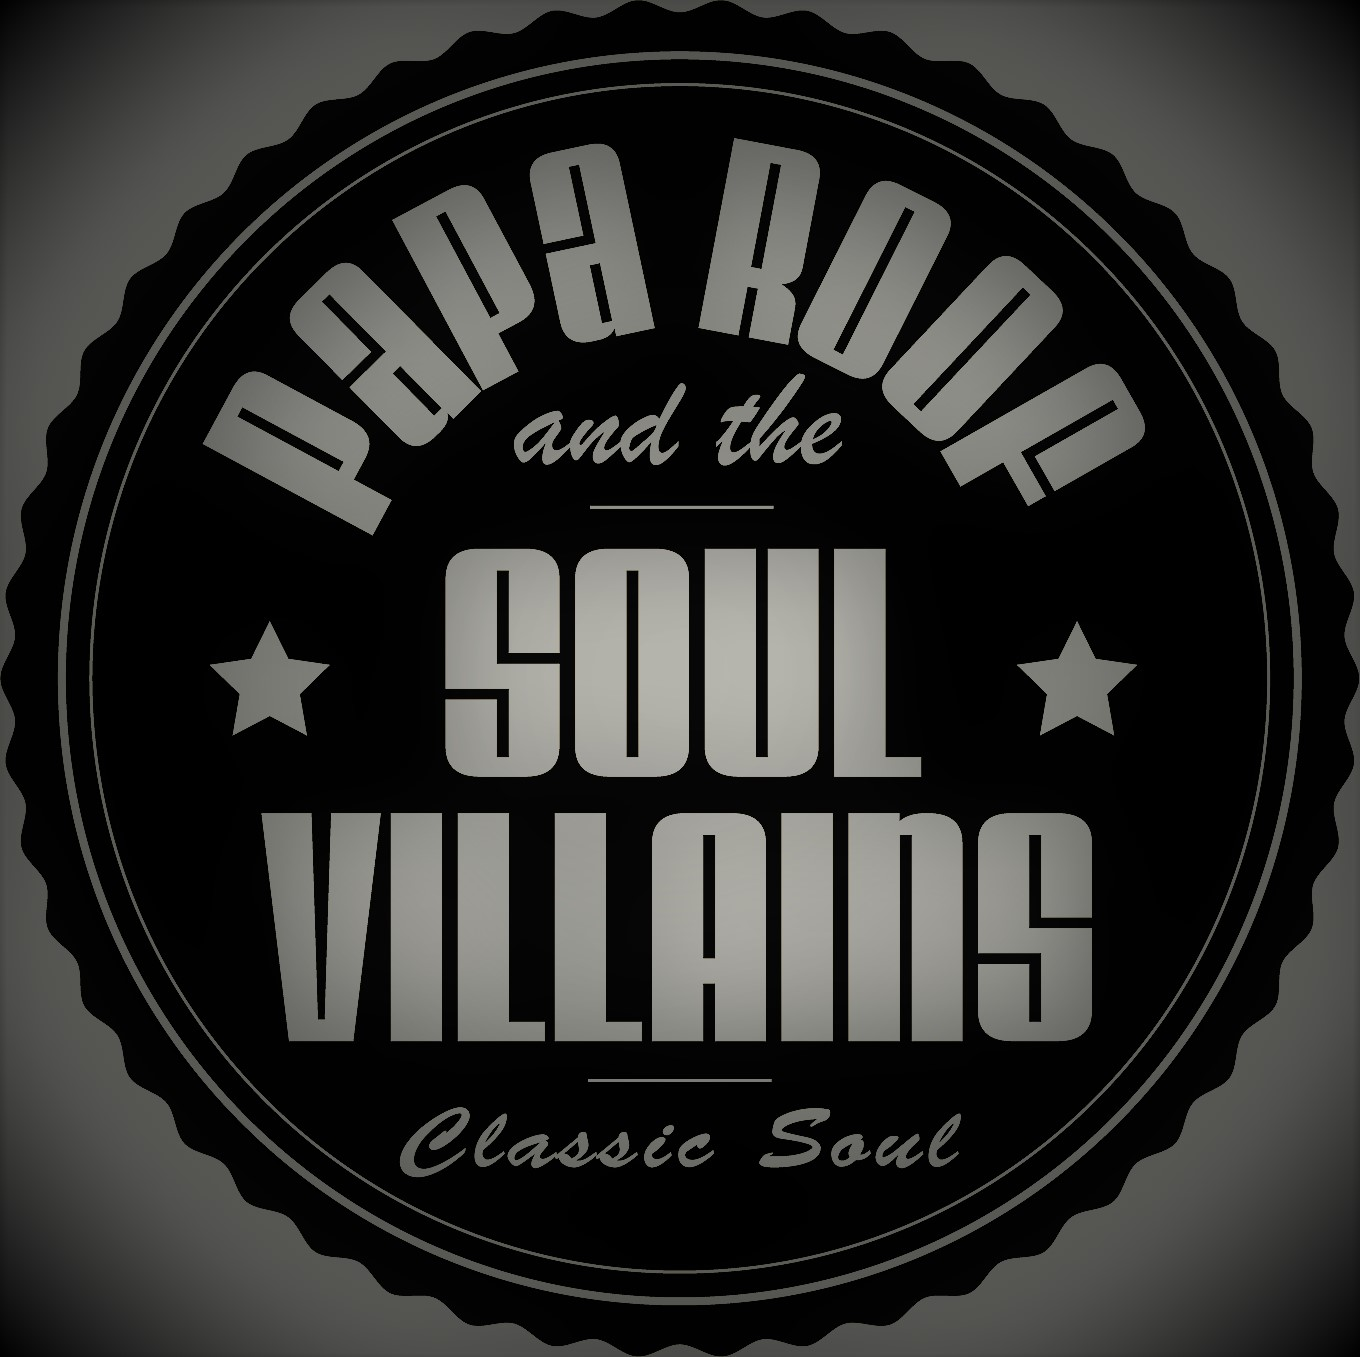 Papa Roof and the Soul Villains